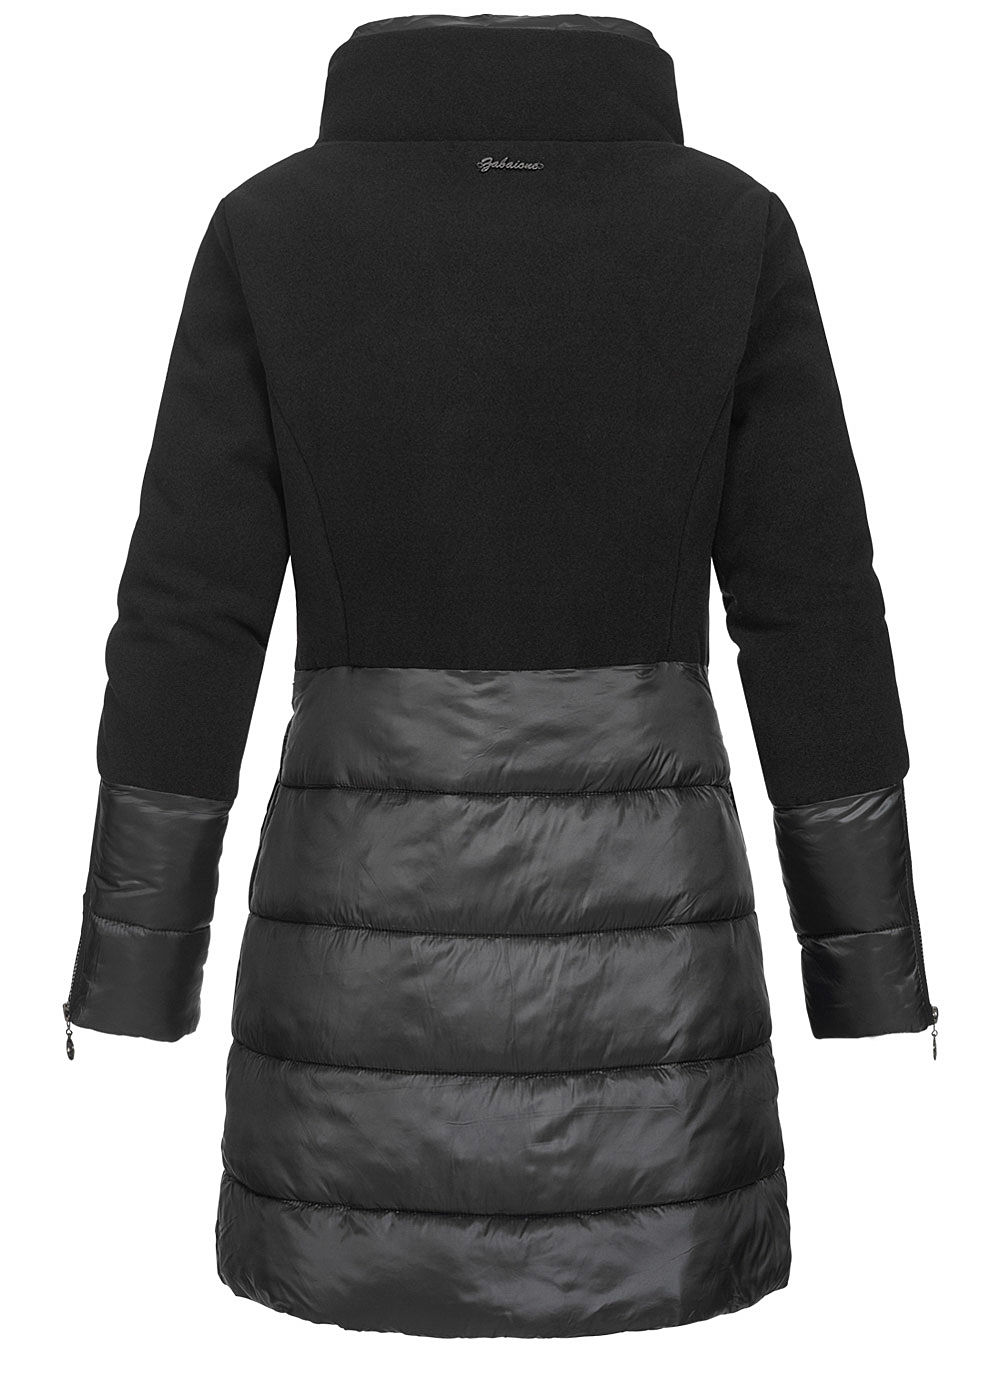 Zabaione Damen Winter Mantel Jacke Stehkragen 2 Pockets